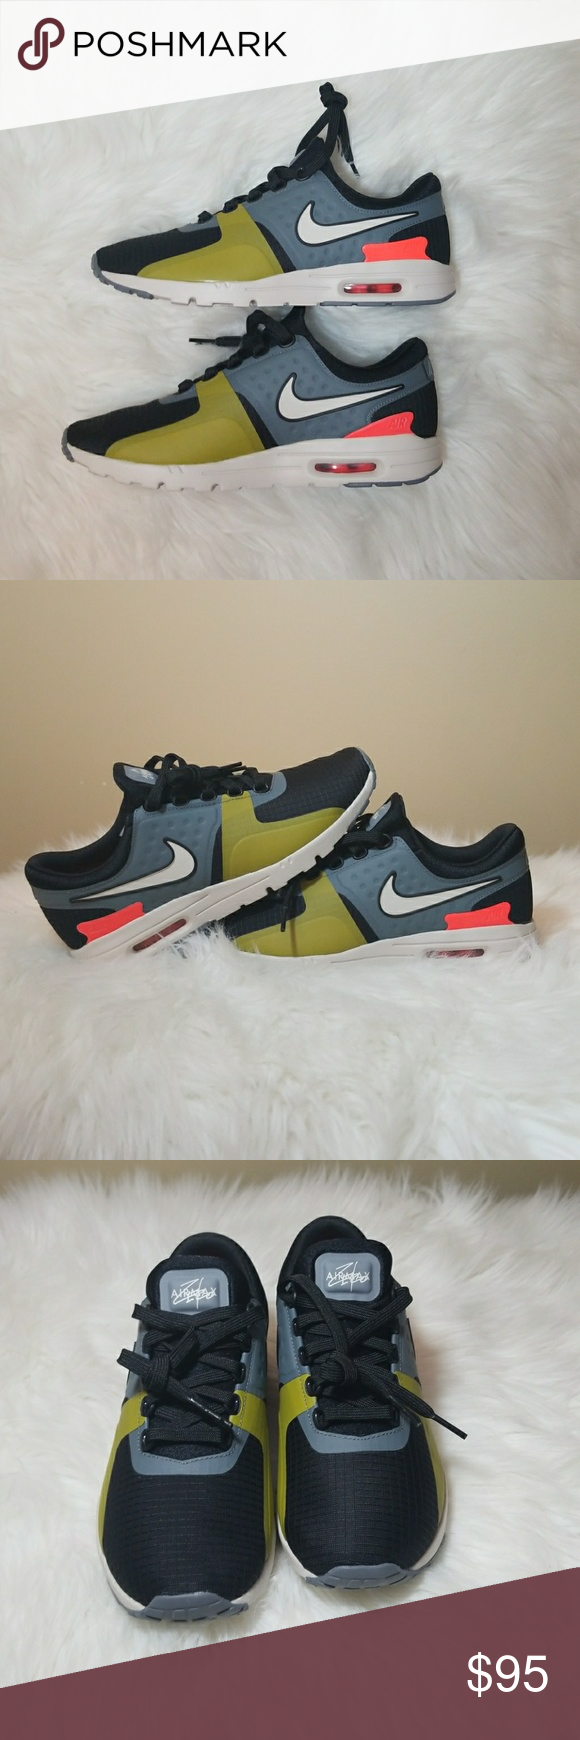 half off dc1da 8ddf9 Women s Air Max Zero SI Air Max Zero SI - Black Light Bone-Cool Grey. Never  Worn with Box Included no lid. Serious offers and Reasonable Negotiations  will ...